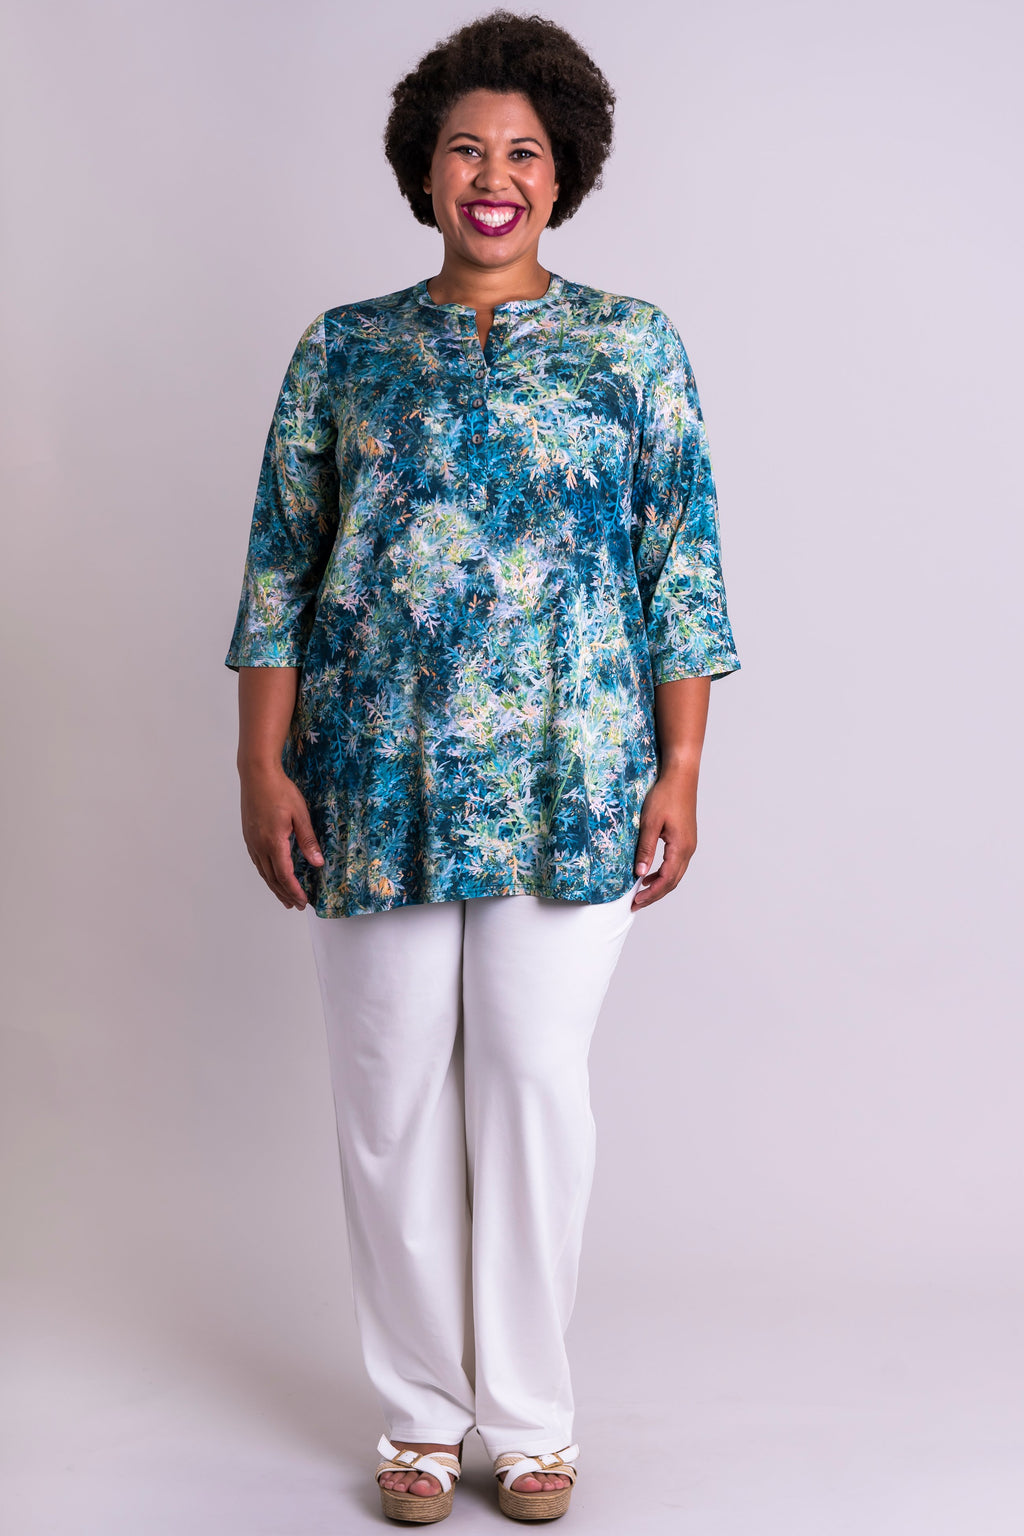 Tara Blouse, Fresh Sprig, Viscose - Blue Sky Clothing Co